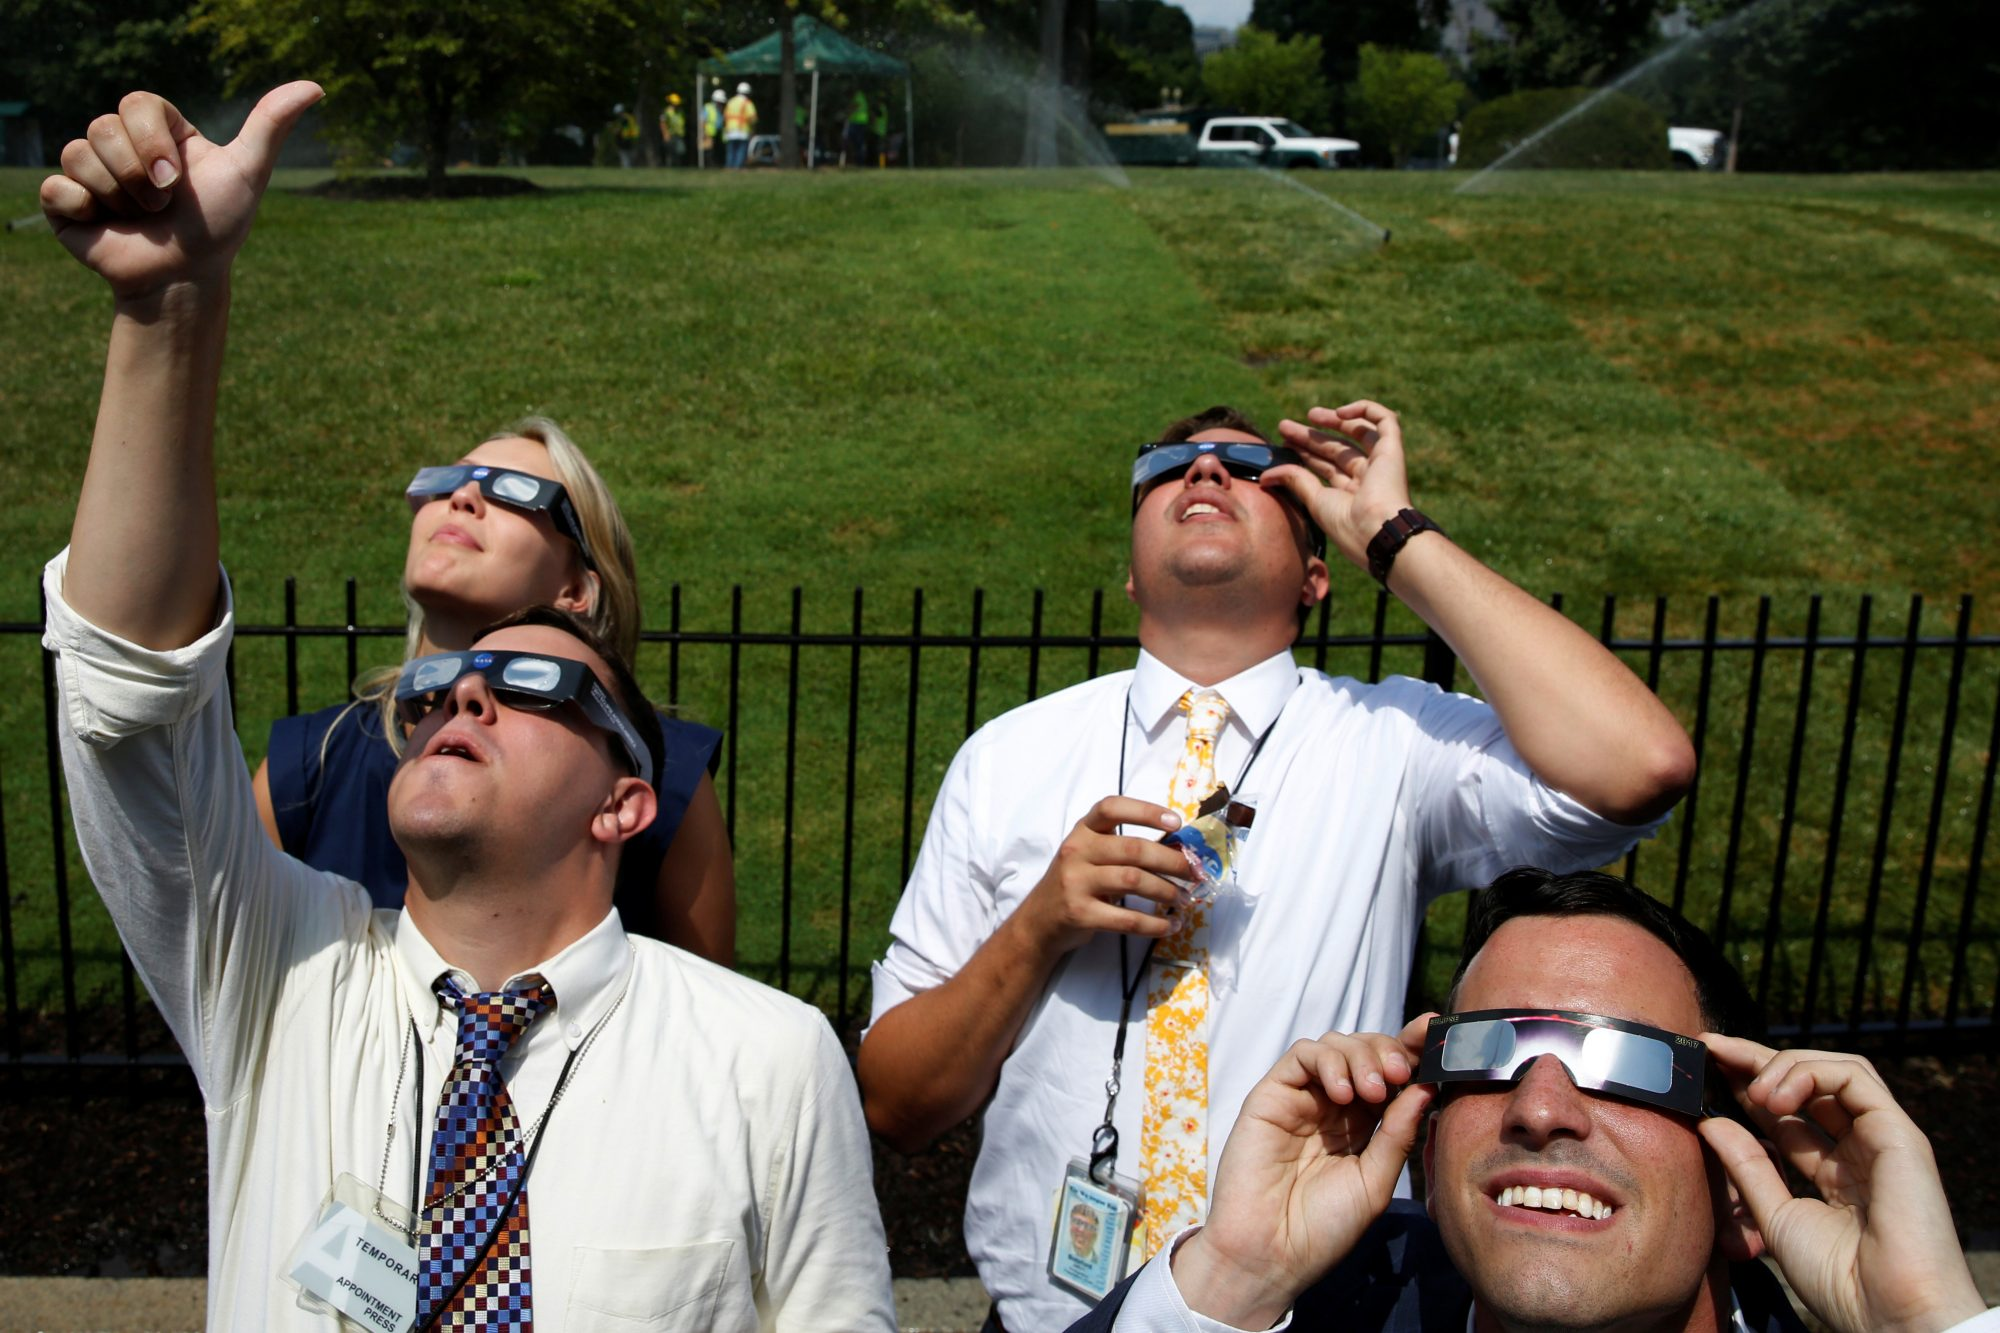 Members of the media watch the solar eclipse at the White House in Washington D.C.. Photo by Yuri Gripas/Reuters